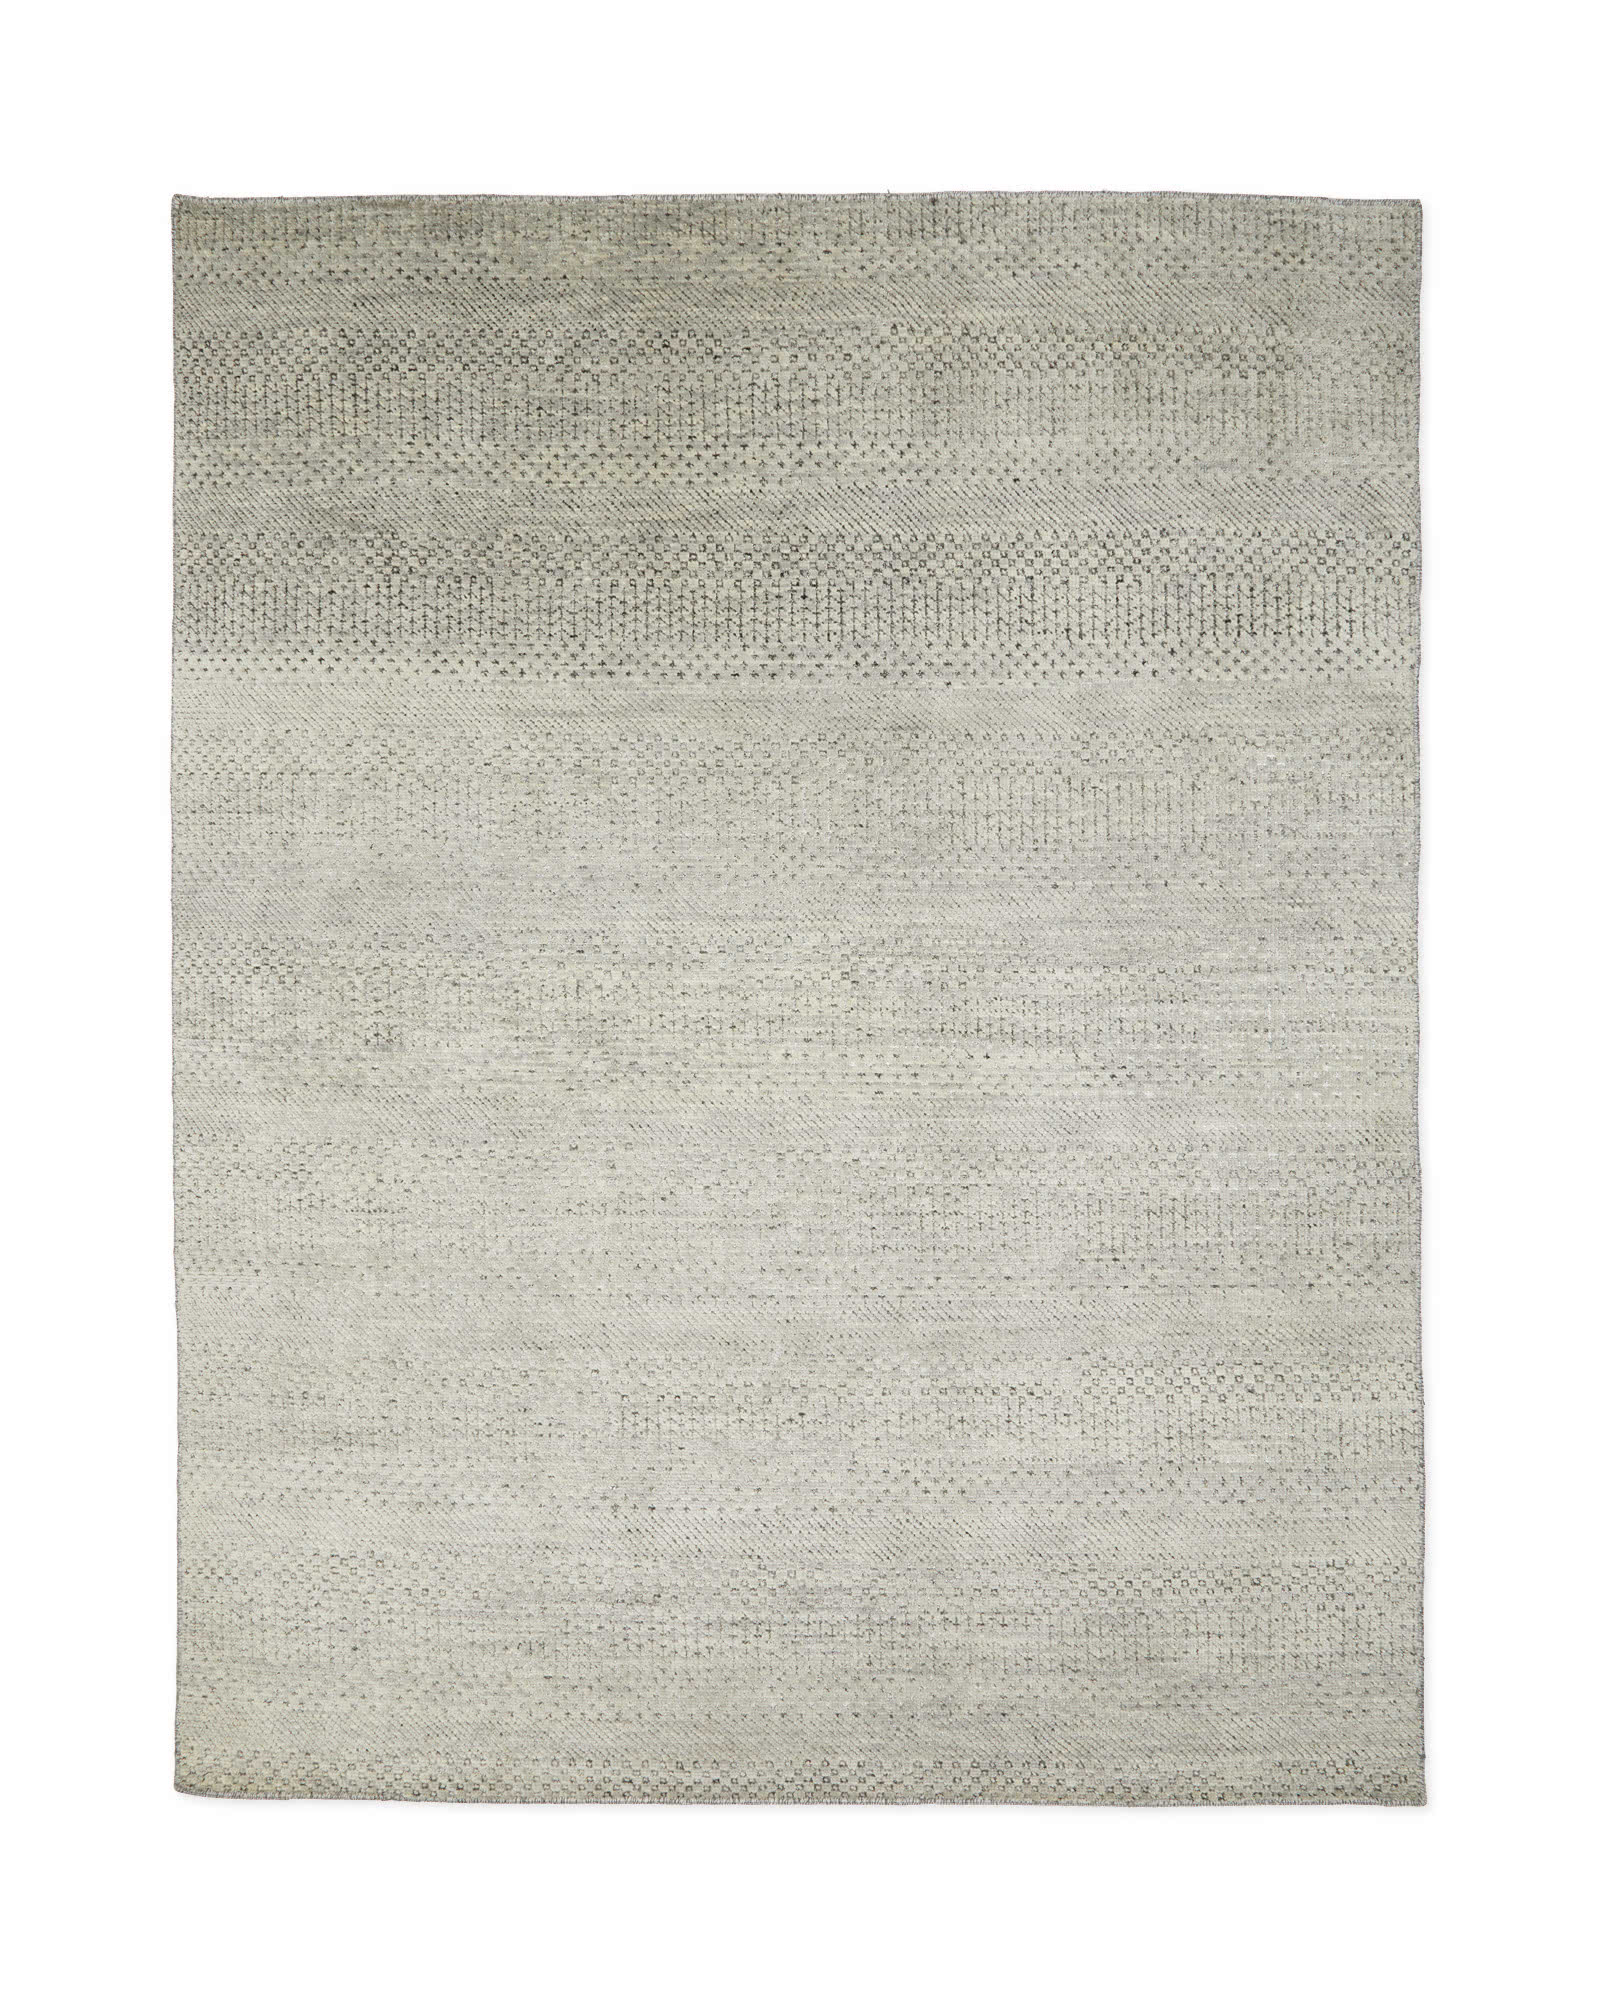 Dipsea Hand-Knotted Rug